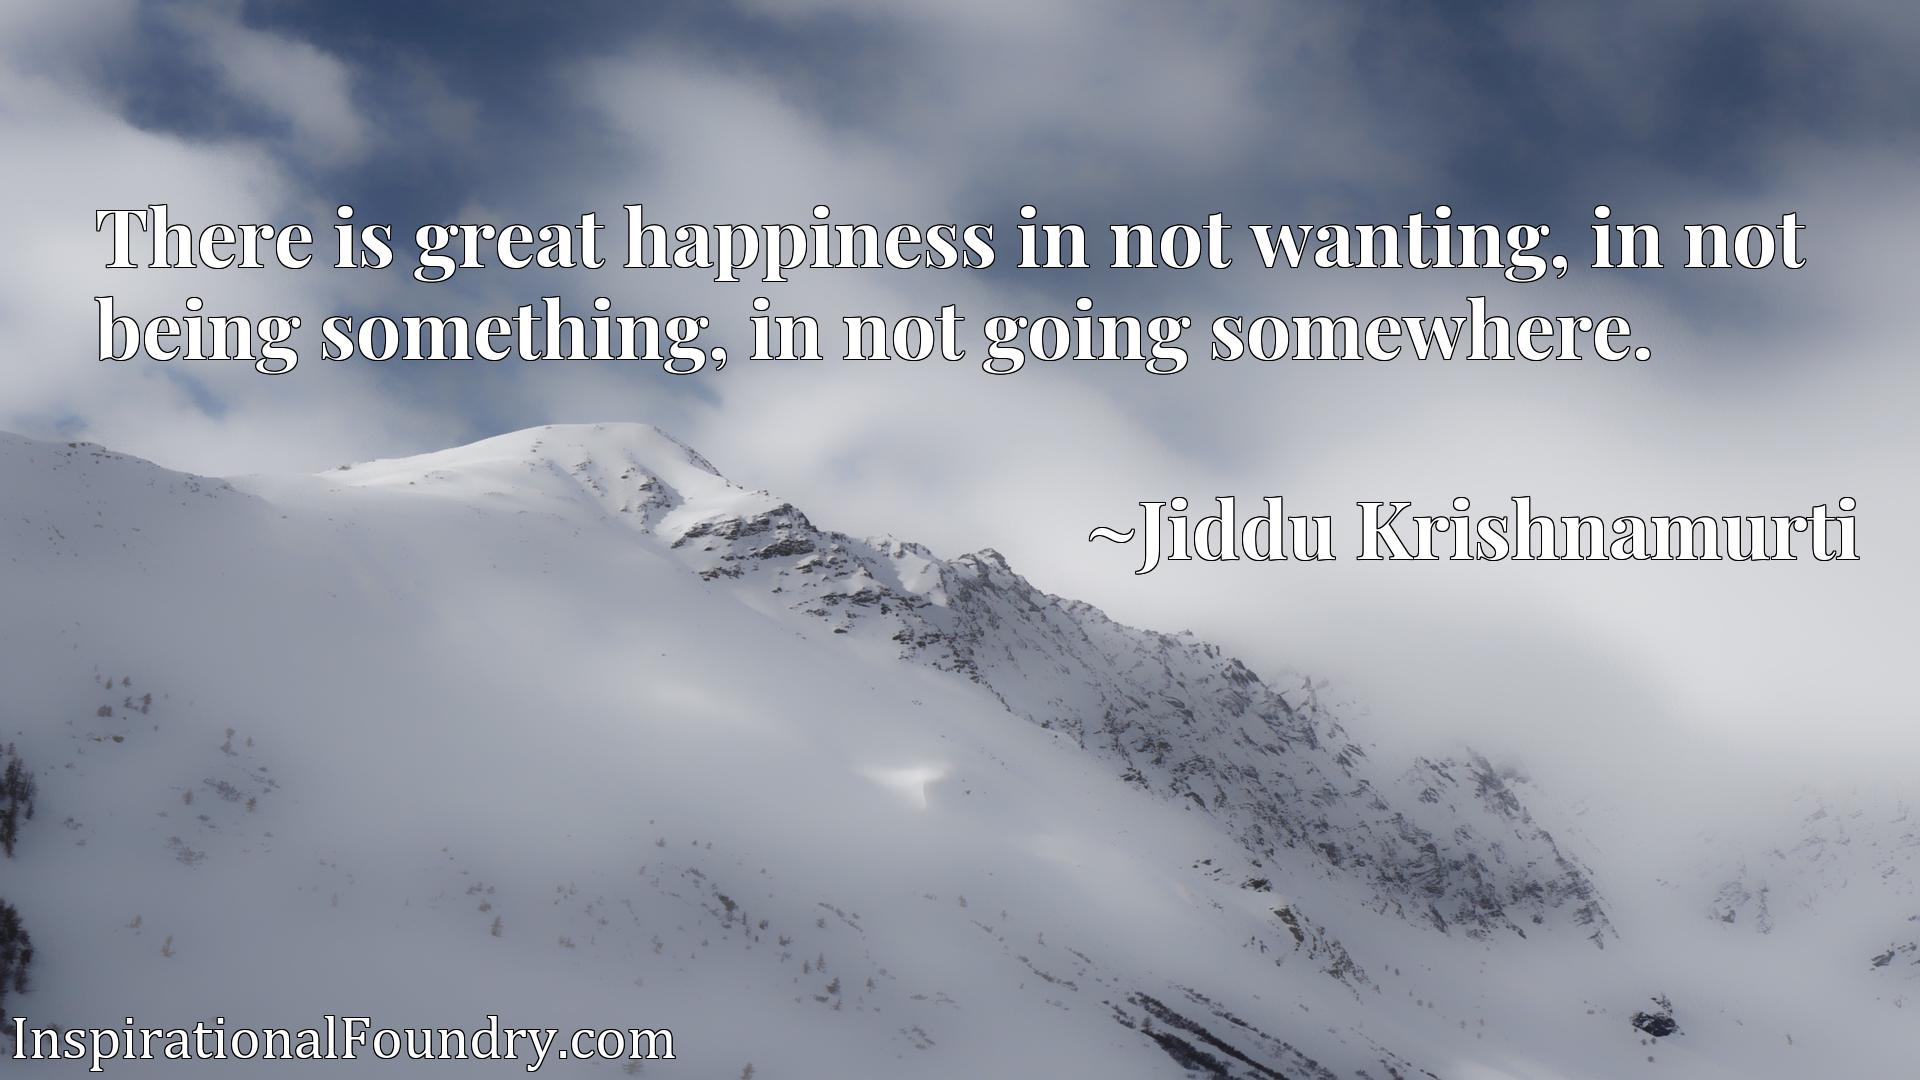 There is great happiness in not wanting, in not being something, in not going somewhere.